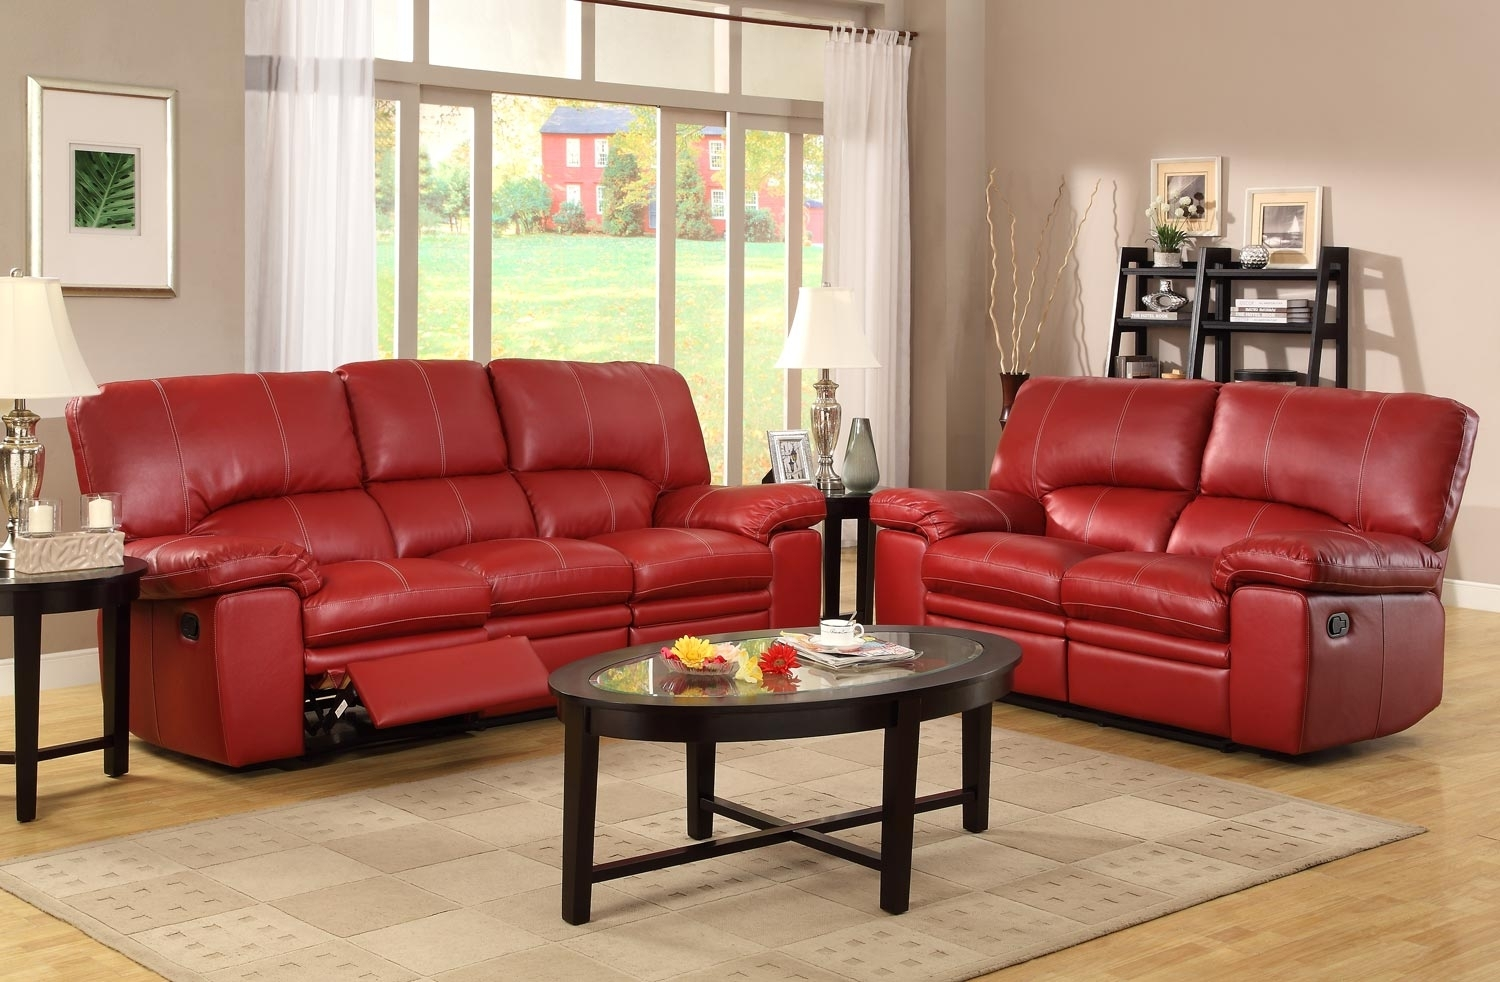 Great Red Leather Sofa Set 75 In Living Room Sofa Ideas With Red In Red Leather Couches For Living Room (View 6 of 10)